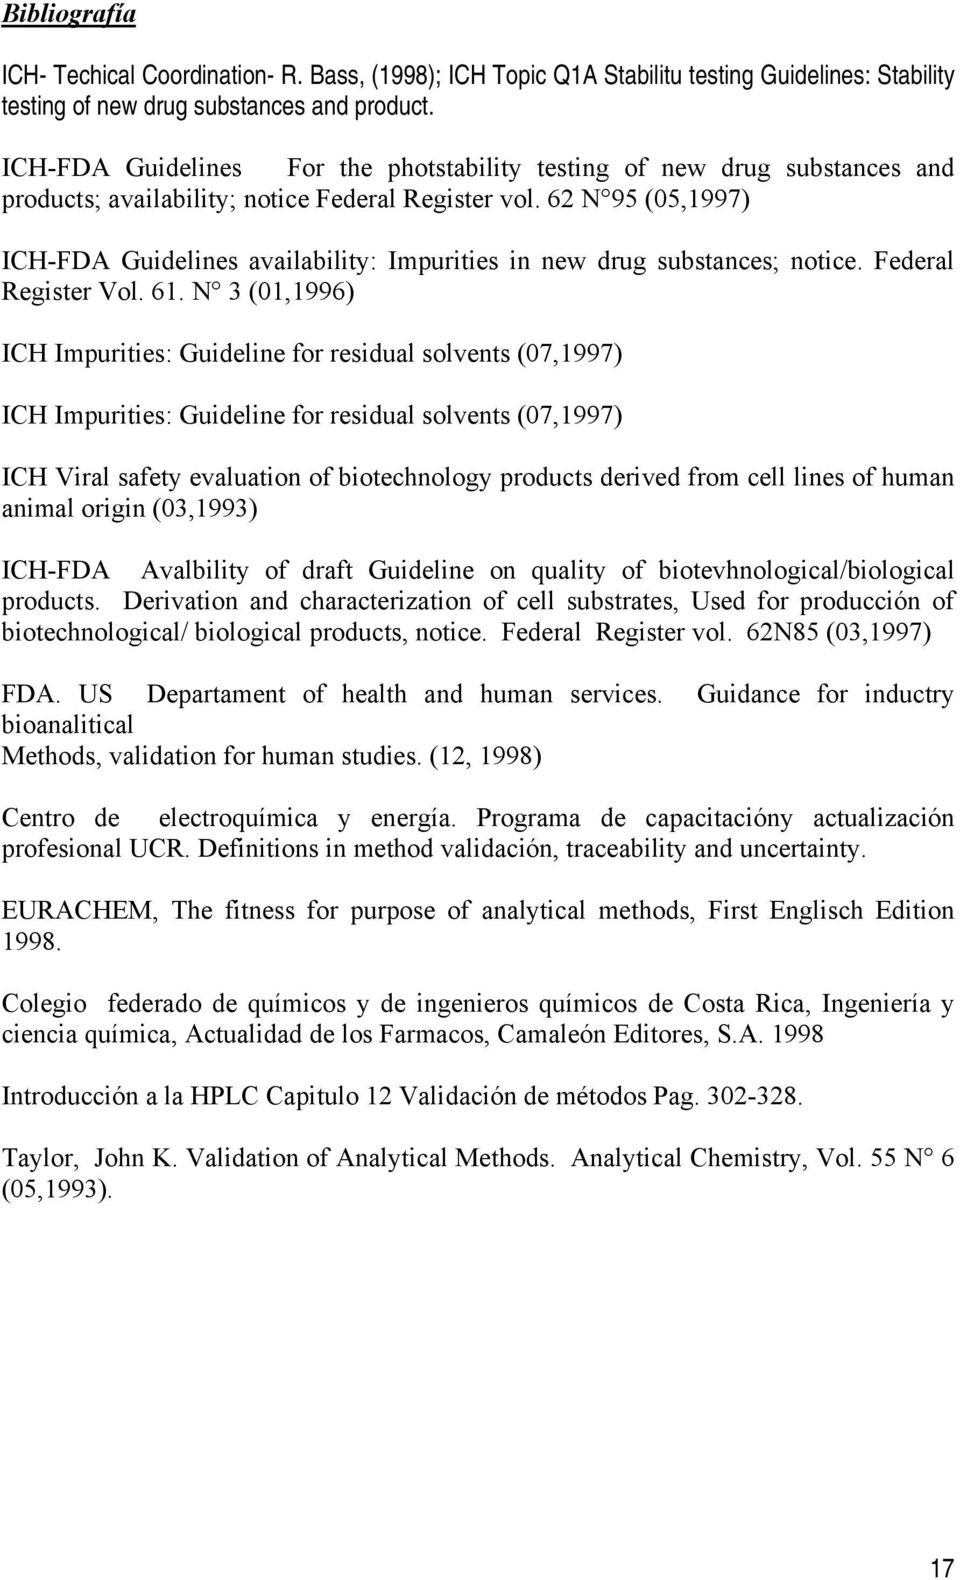 62 N 95 (05,1997) ICH-FDA Guidelines availability: Impurities in new drug substances; notice. Federal Register Vol. 61.